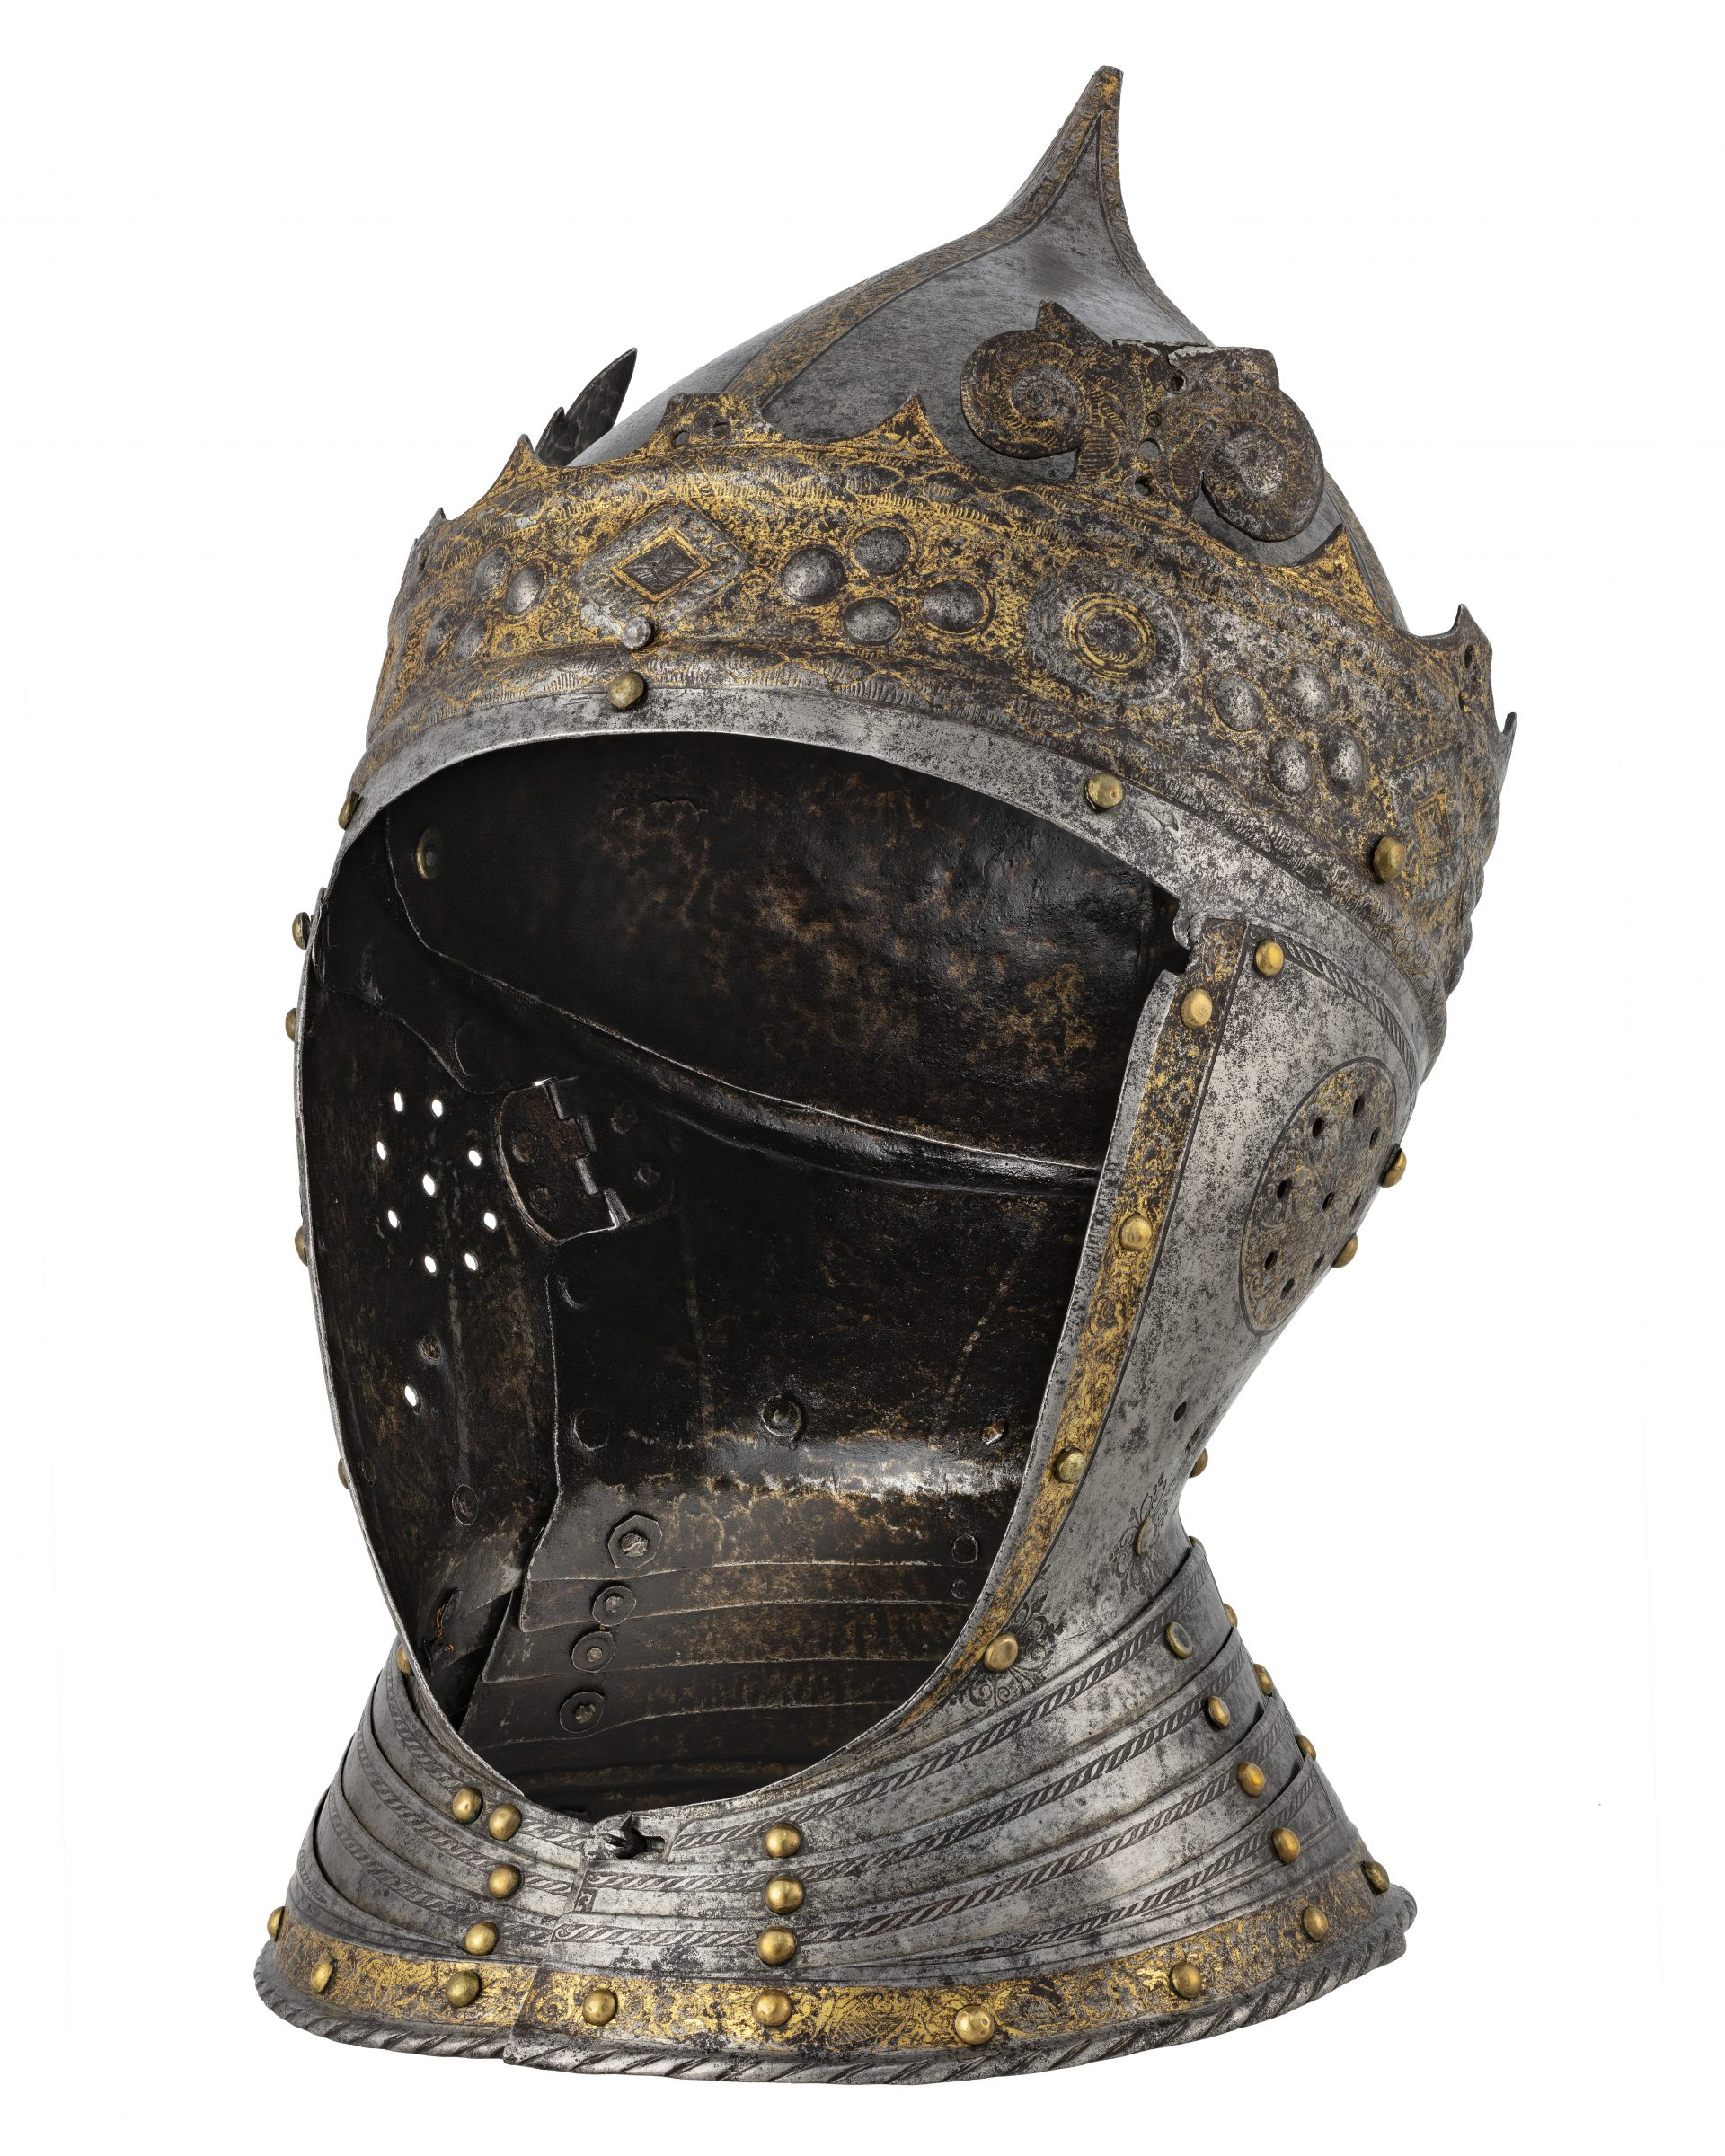 A pointed helmet with a crown.